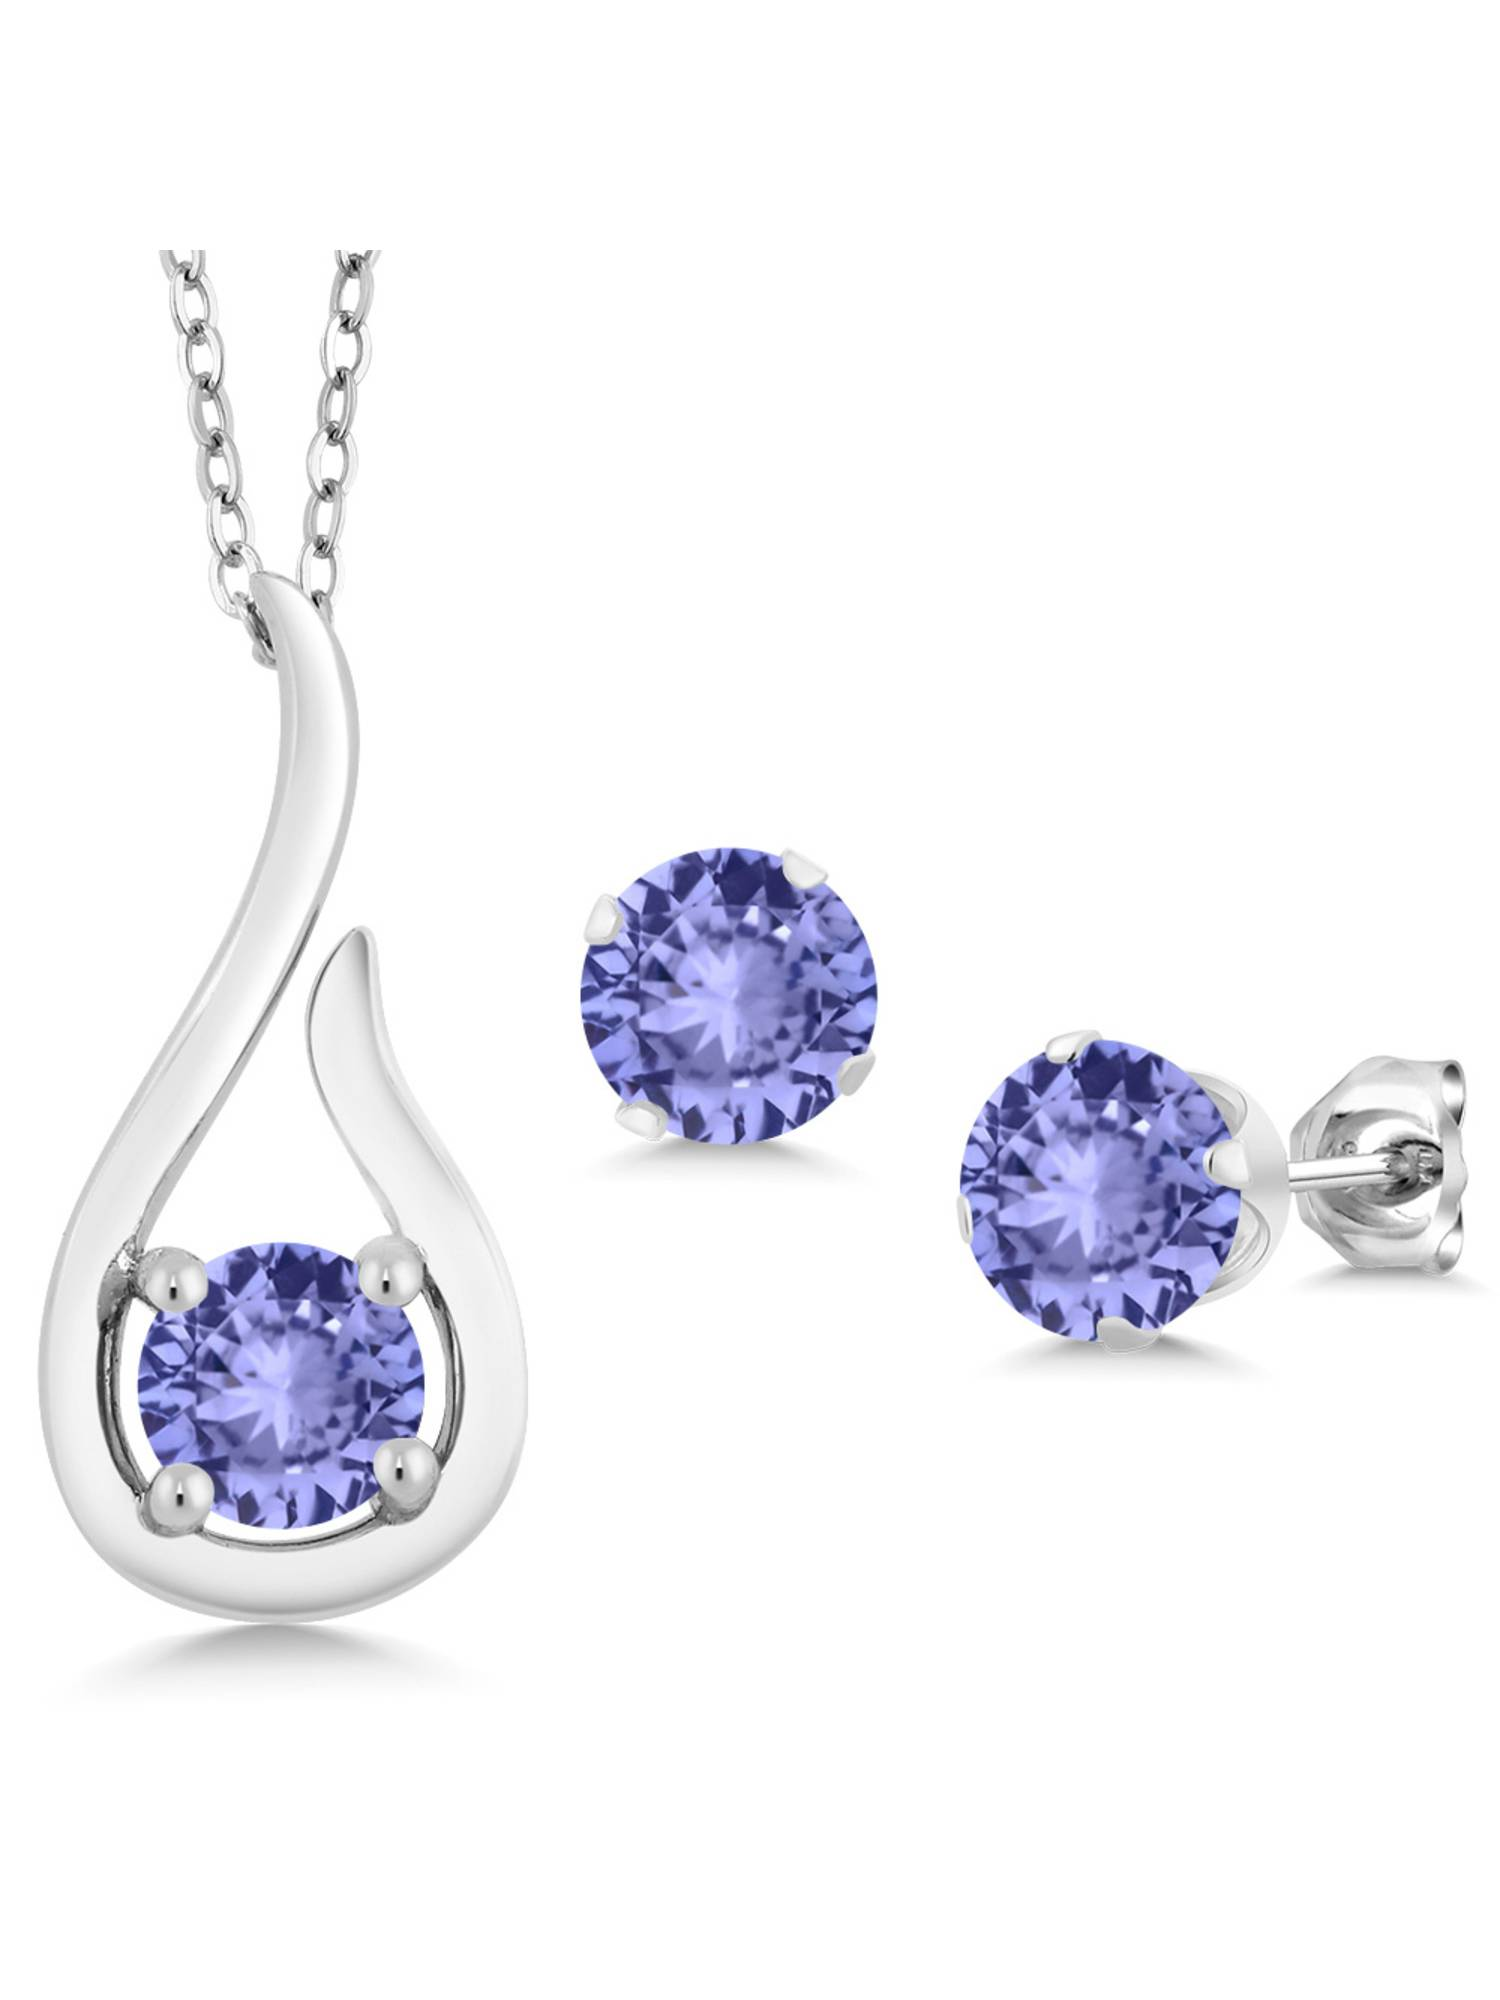 1.38 Ct Round Blue Tanzanite 925 Sterling Silver Pendant Earrings Set With Chain by